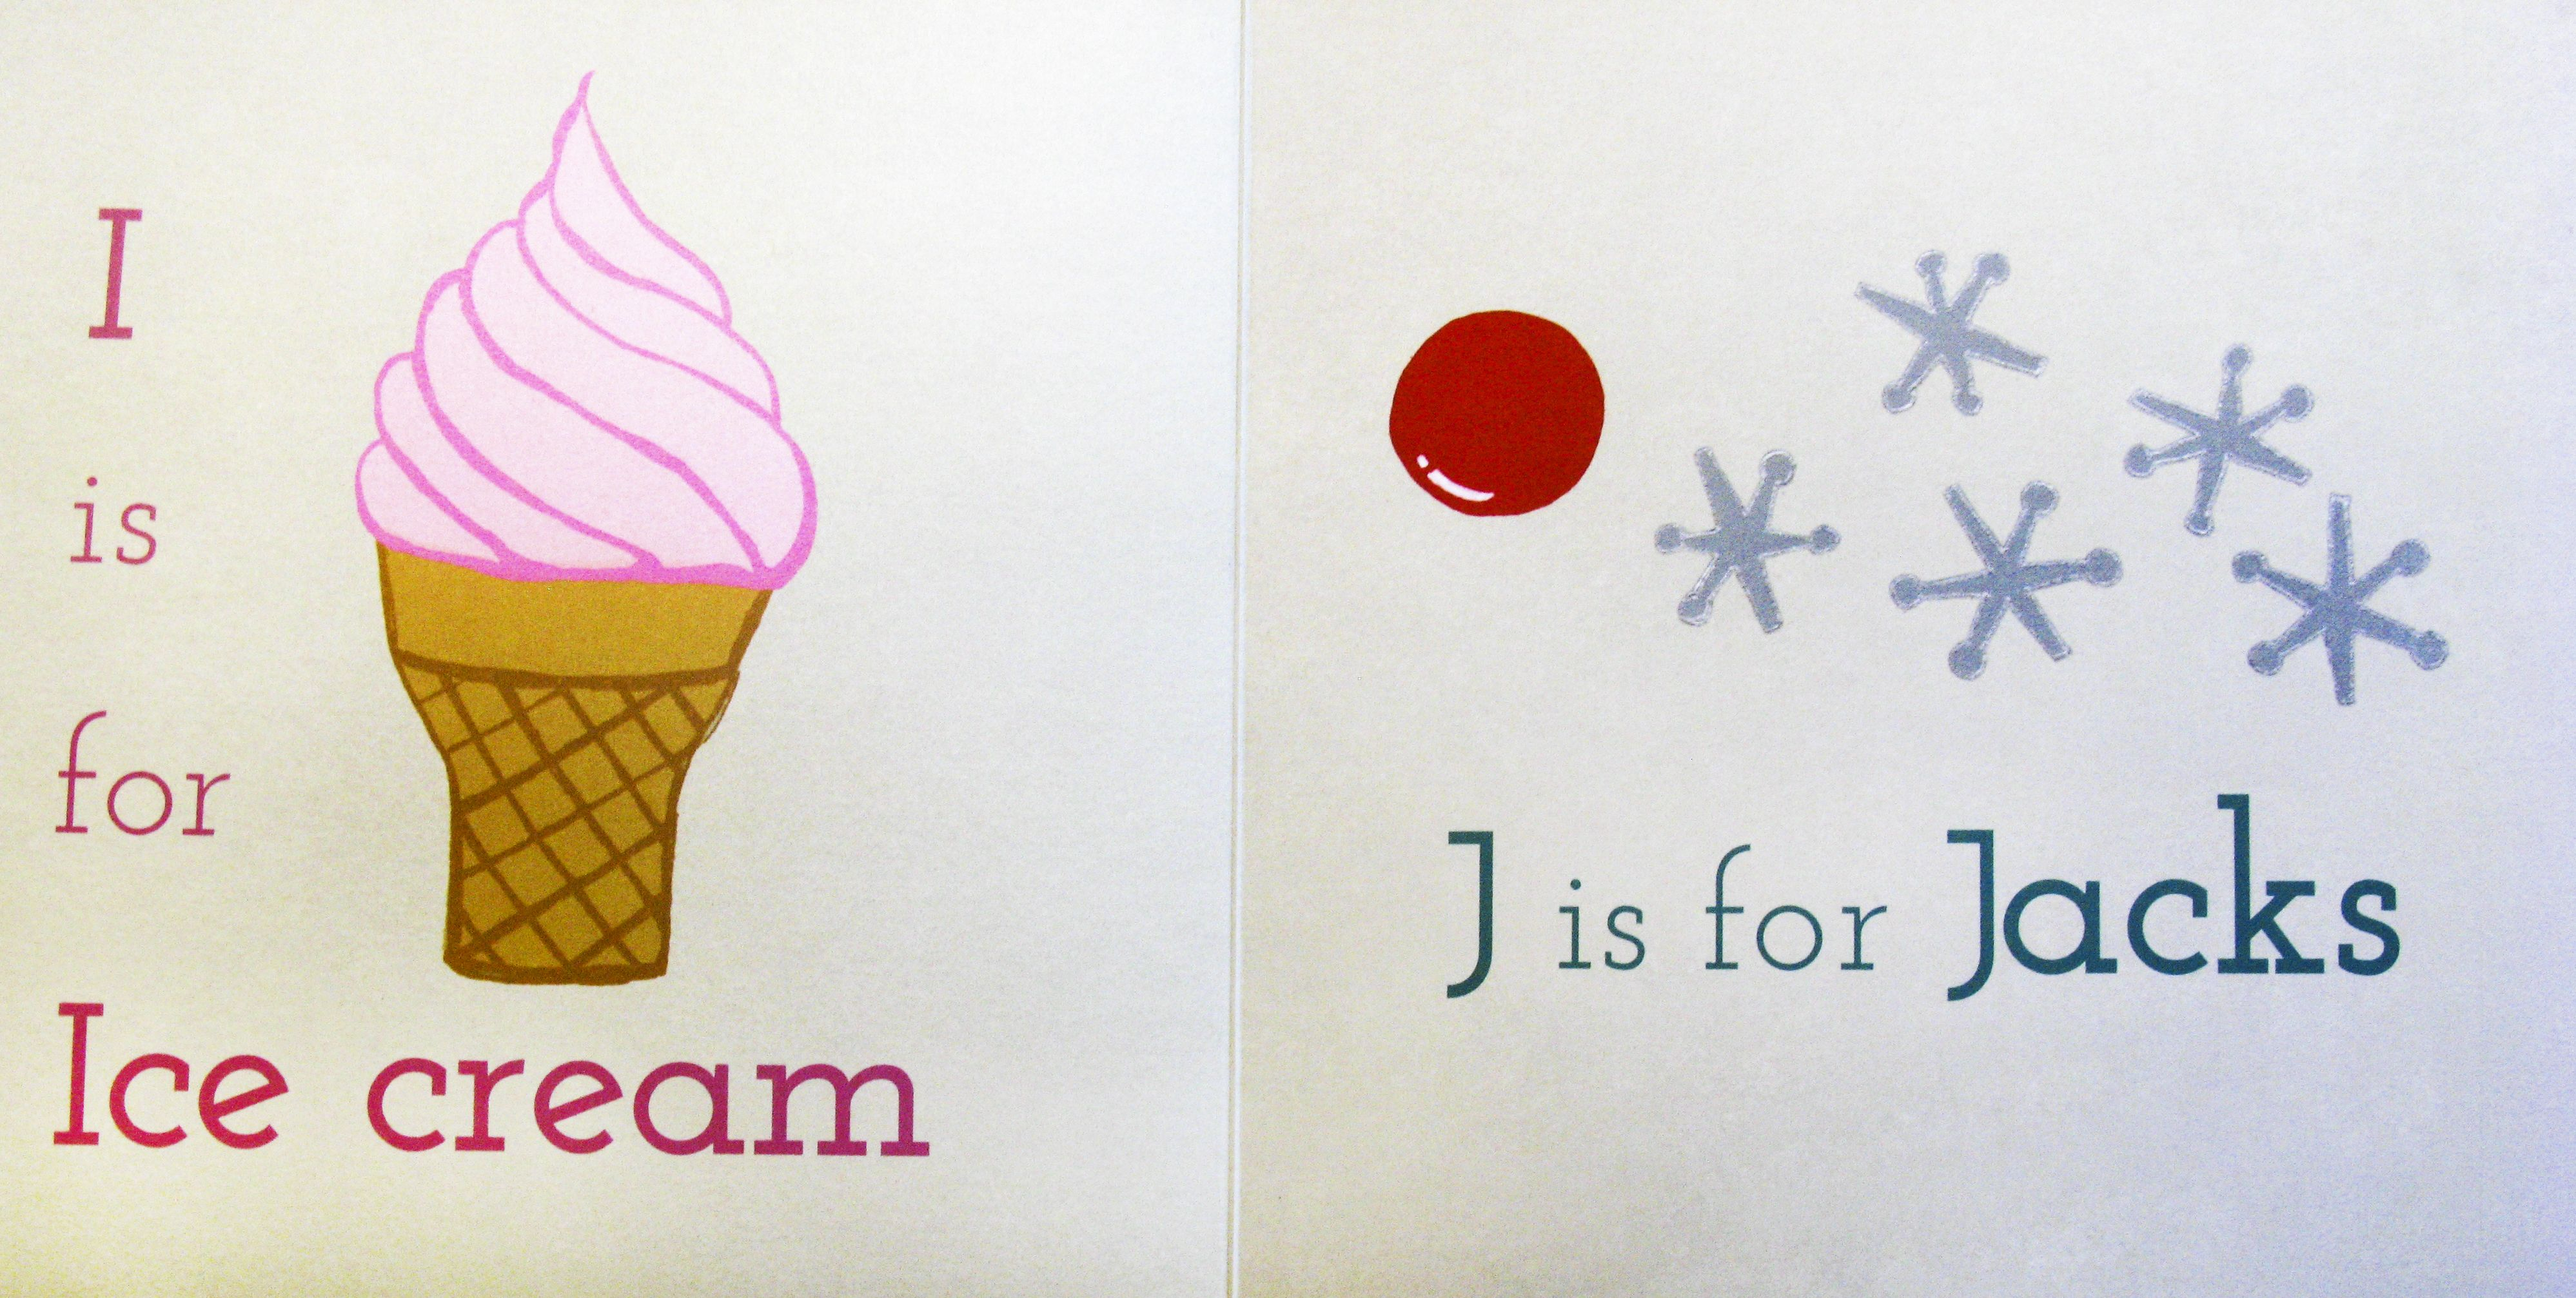 I is for Ice Cream, J is for Jacks! #alphabet #powkidsbooks